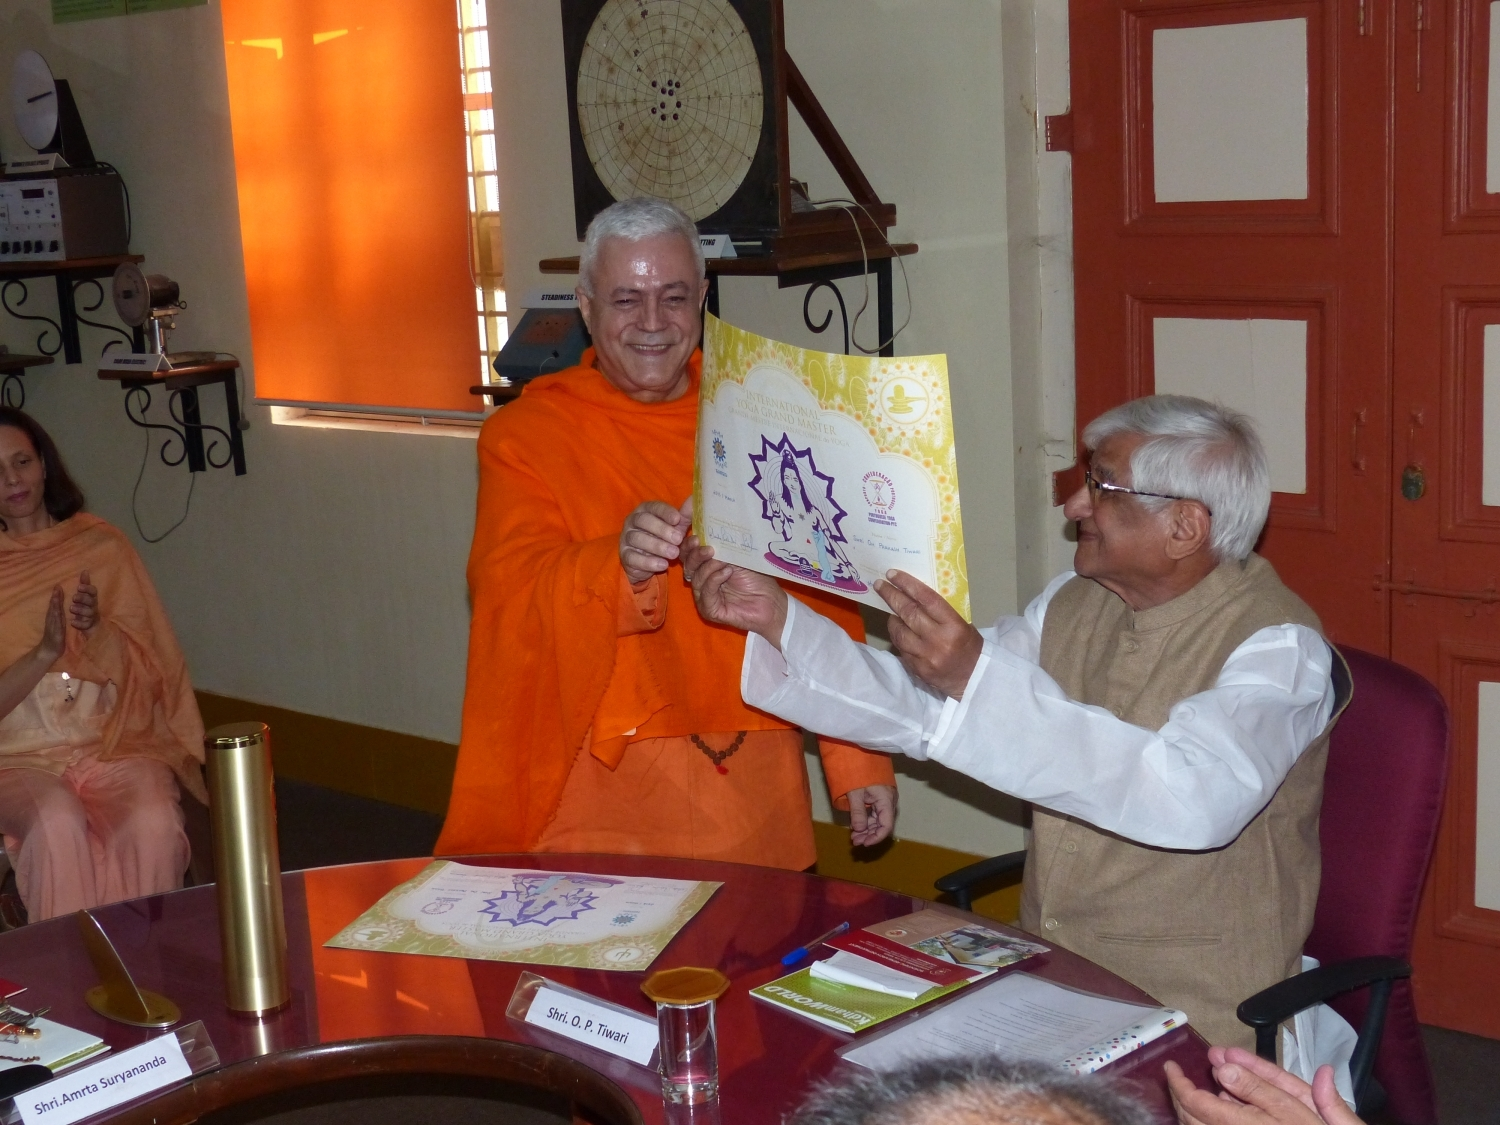 Attribution of the Title of Grand International Yoga Master and Keilasha award to H.H. Shrí Om Prakash Tiwari